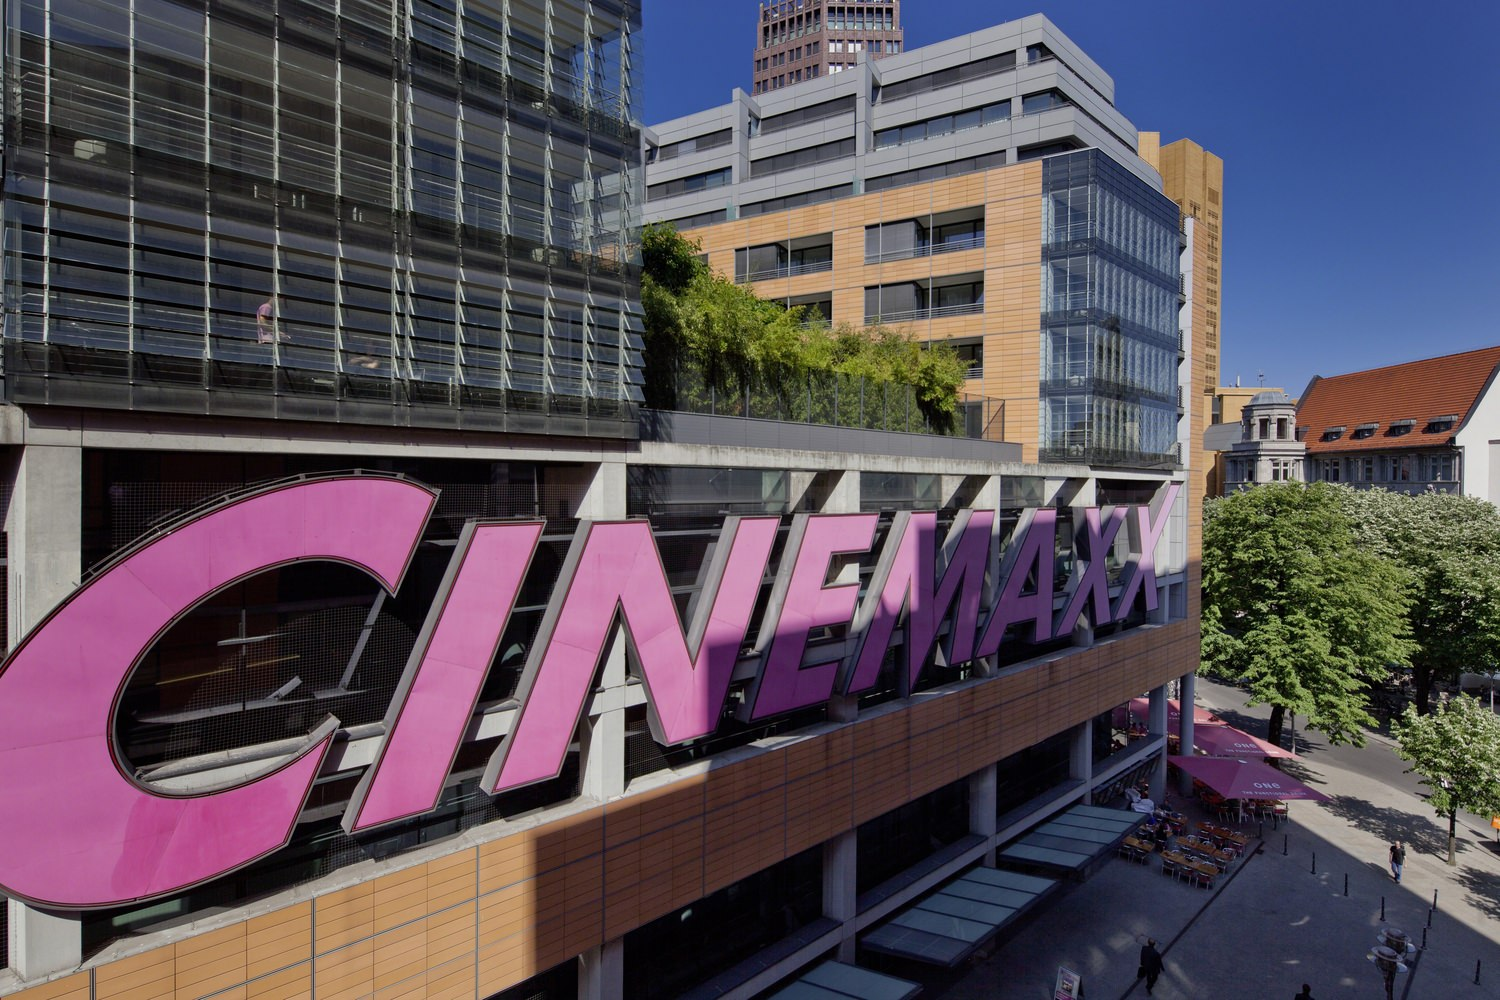 A movie theater that has a pink sign that says Cinemaxx on it and there are people walking in front of it.